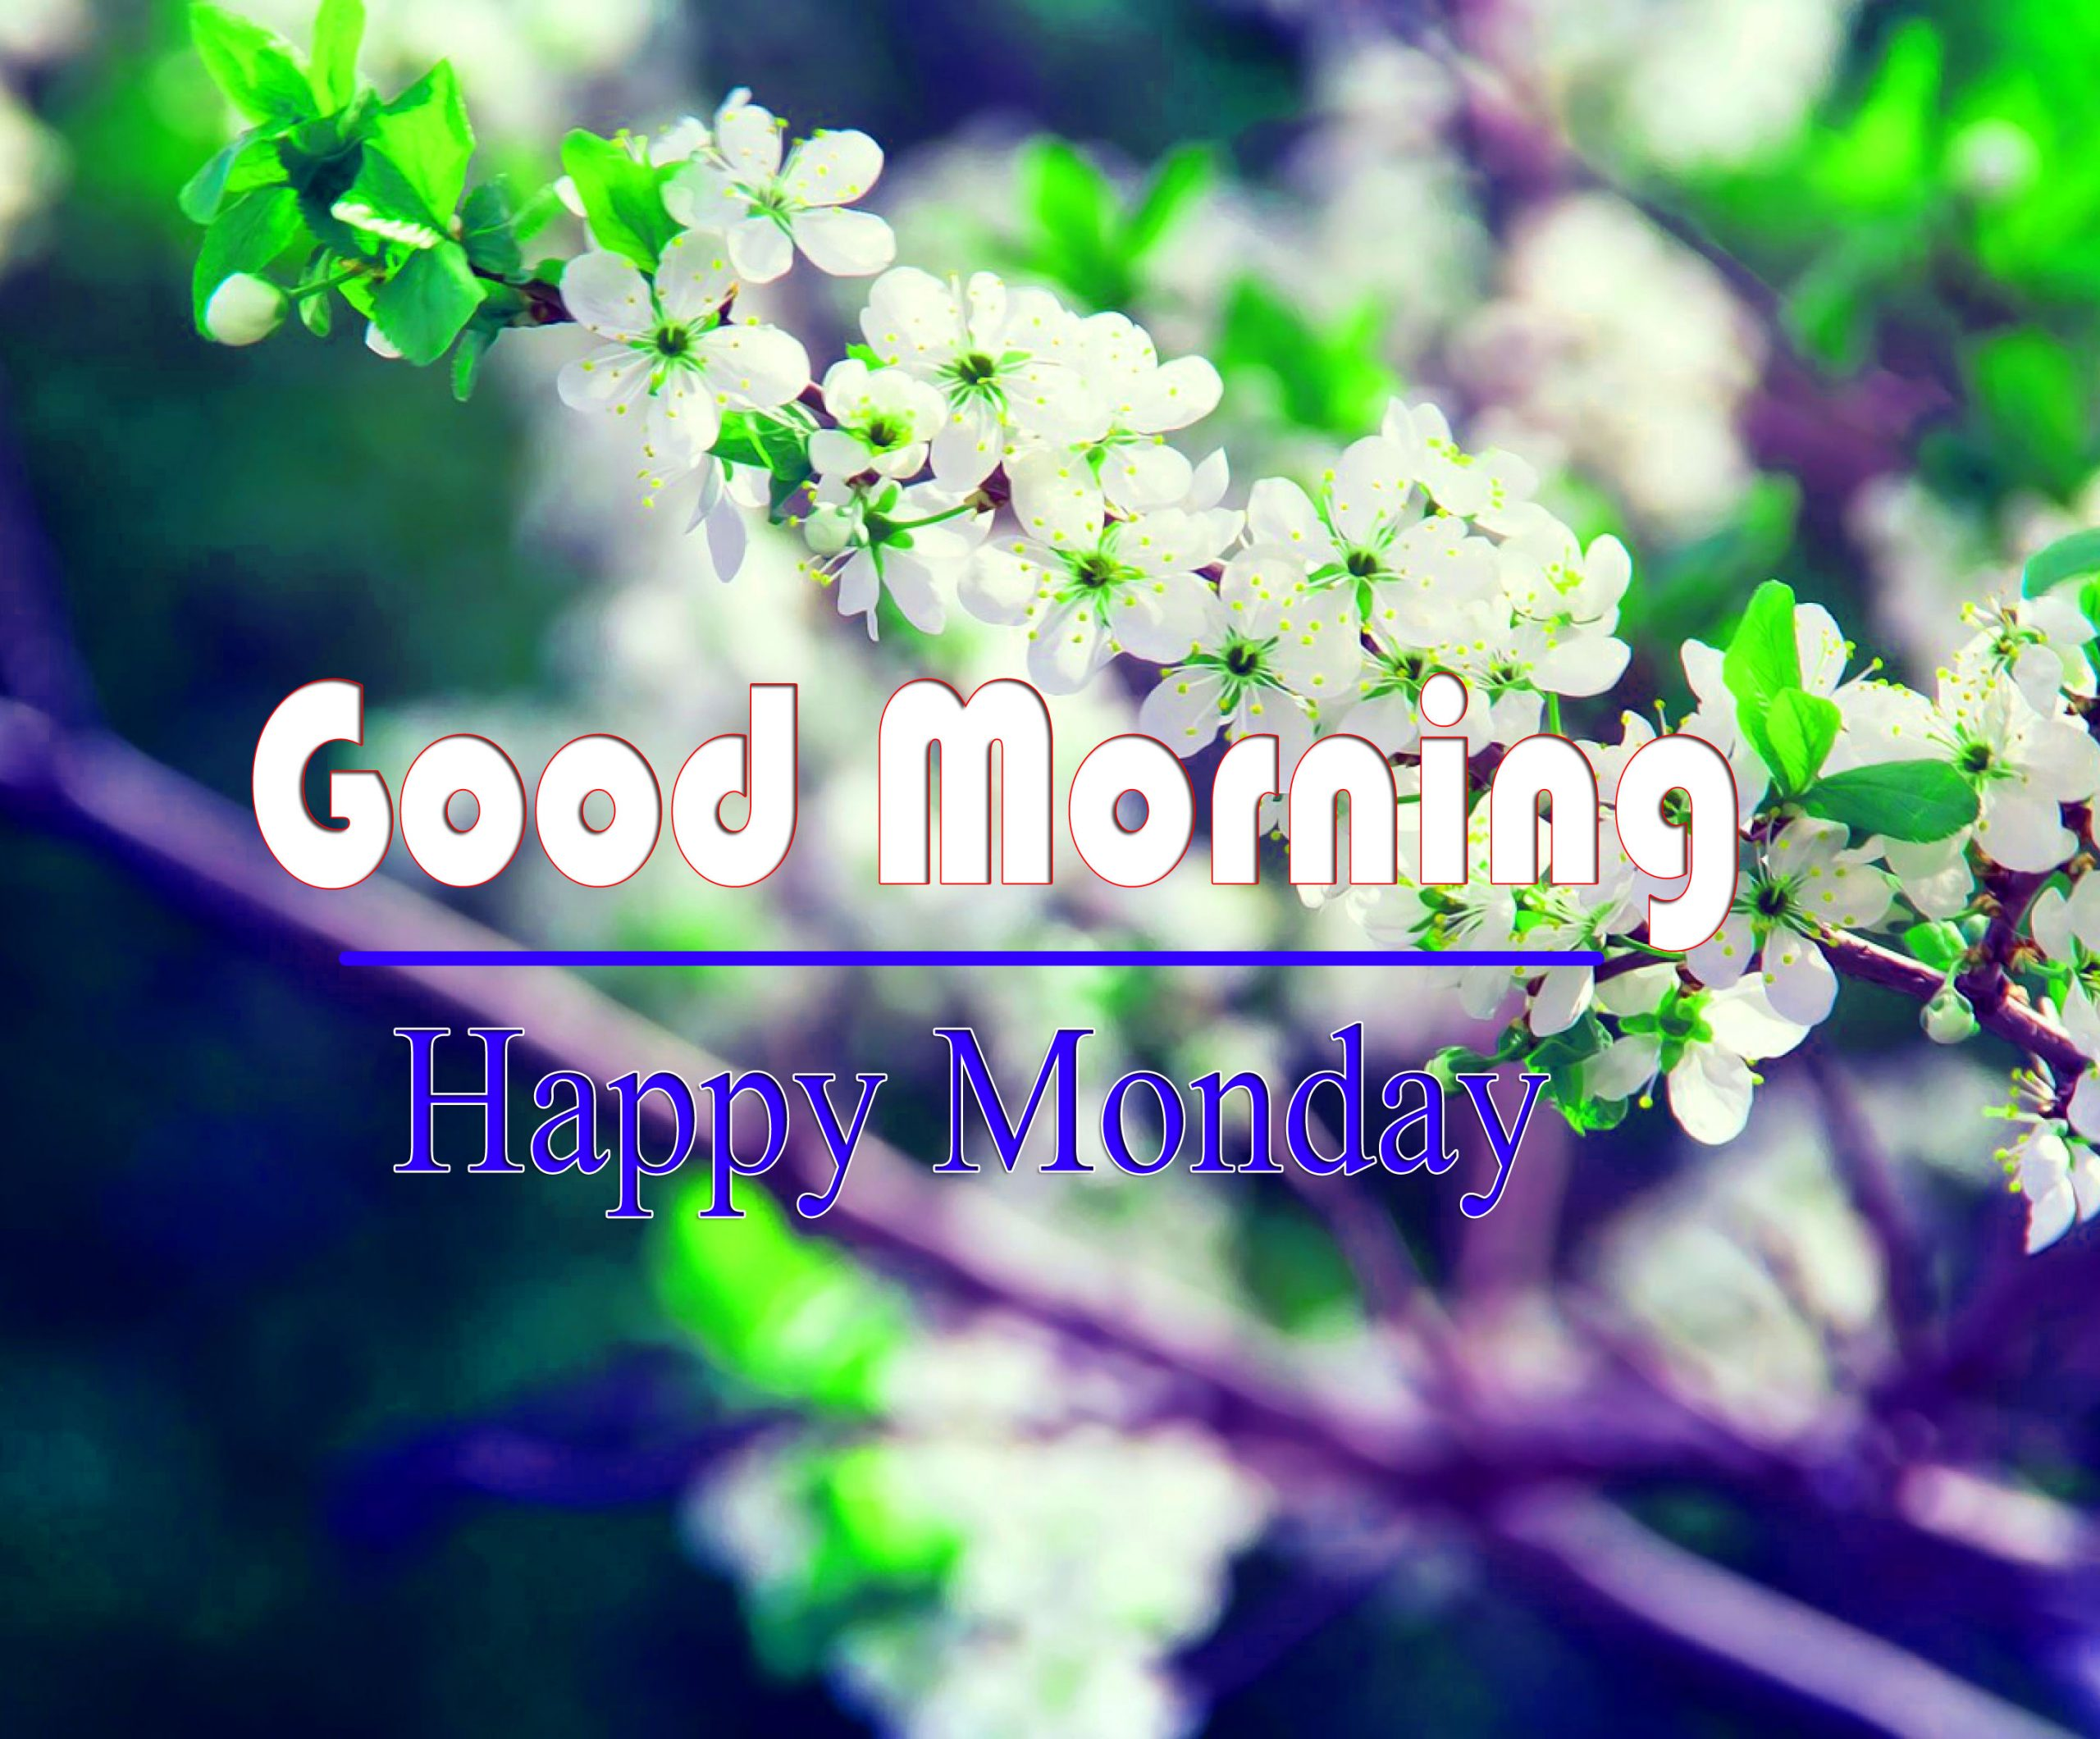 For Friend Monday Good Morning Images 1